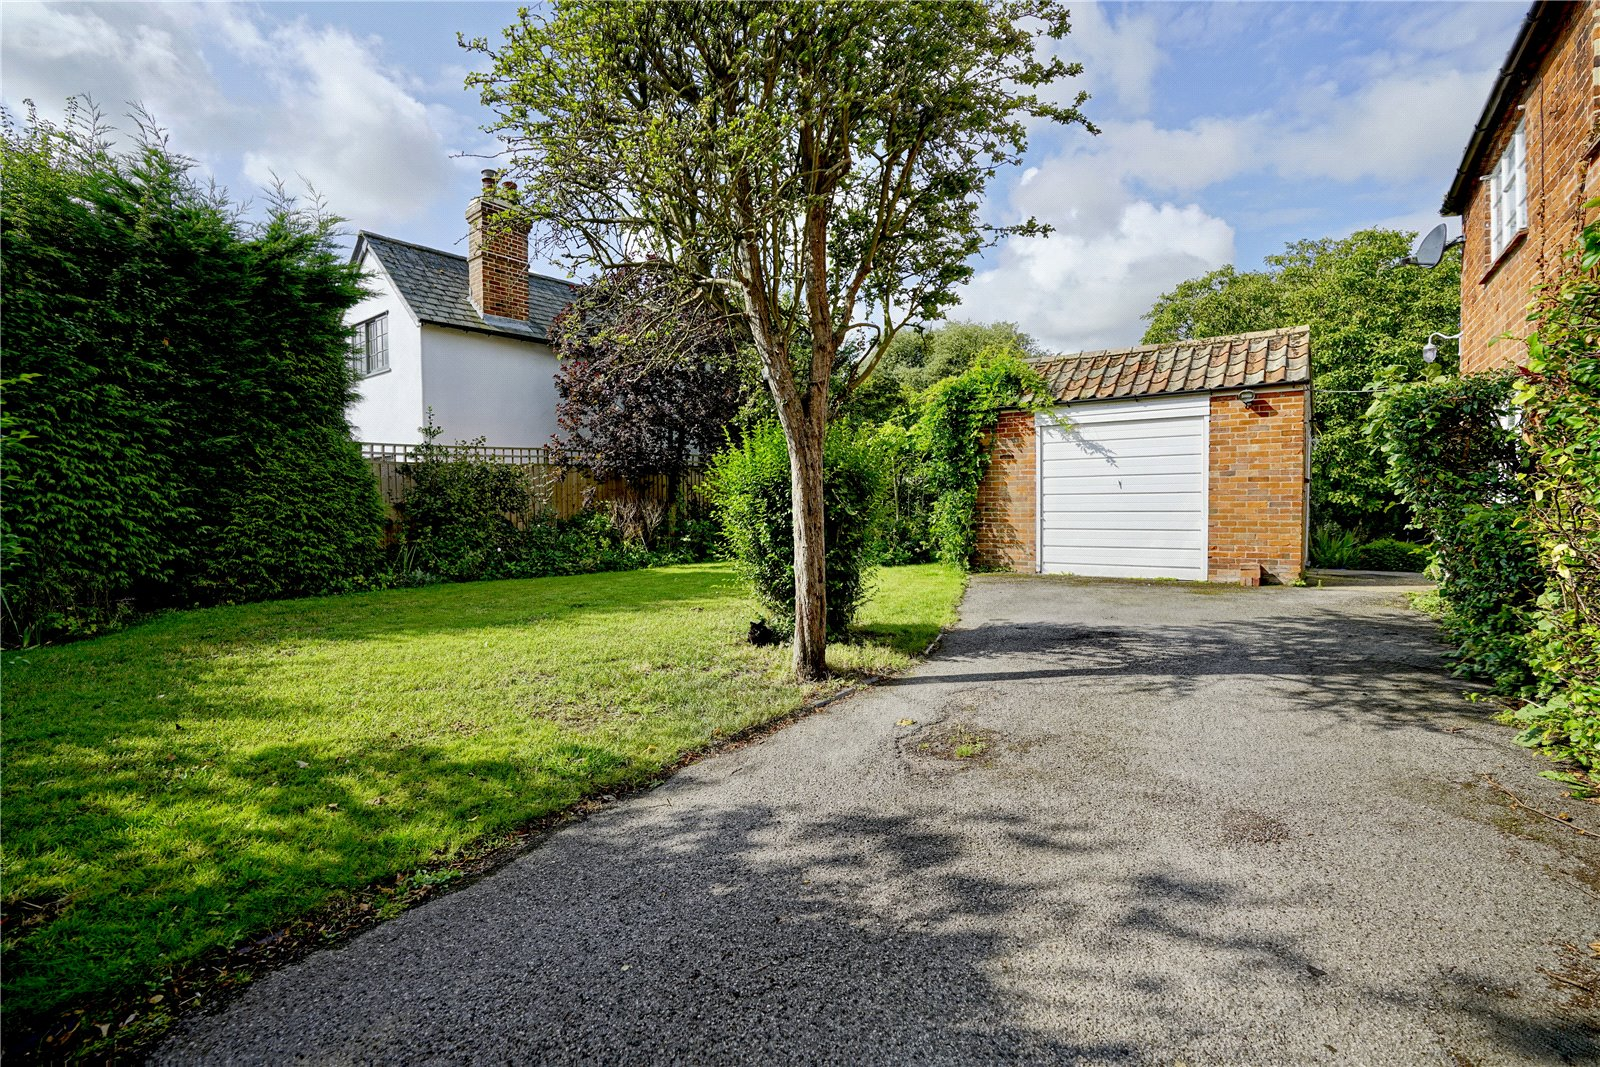 4 bed house for sale in Buckden 7